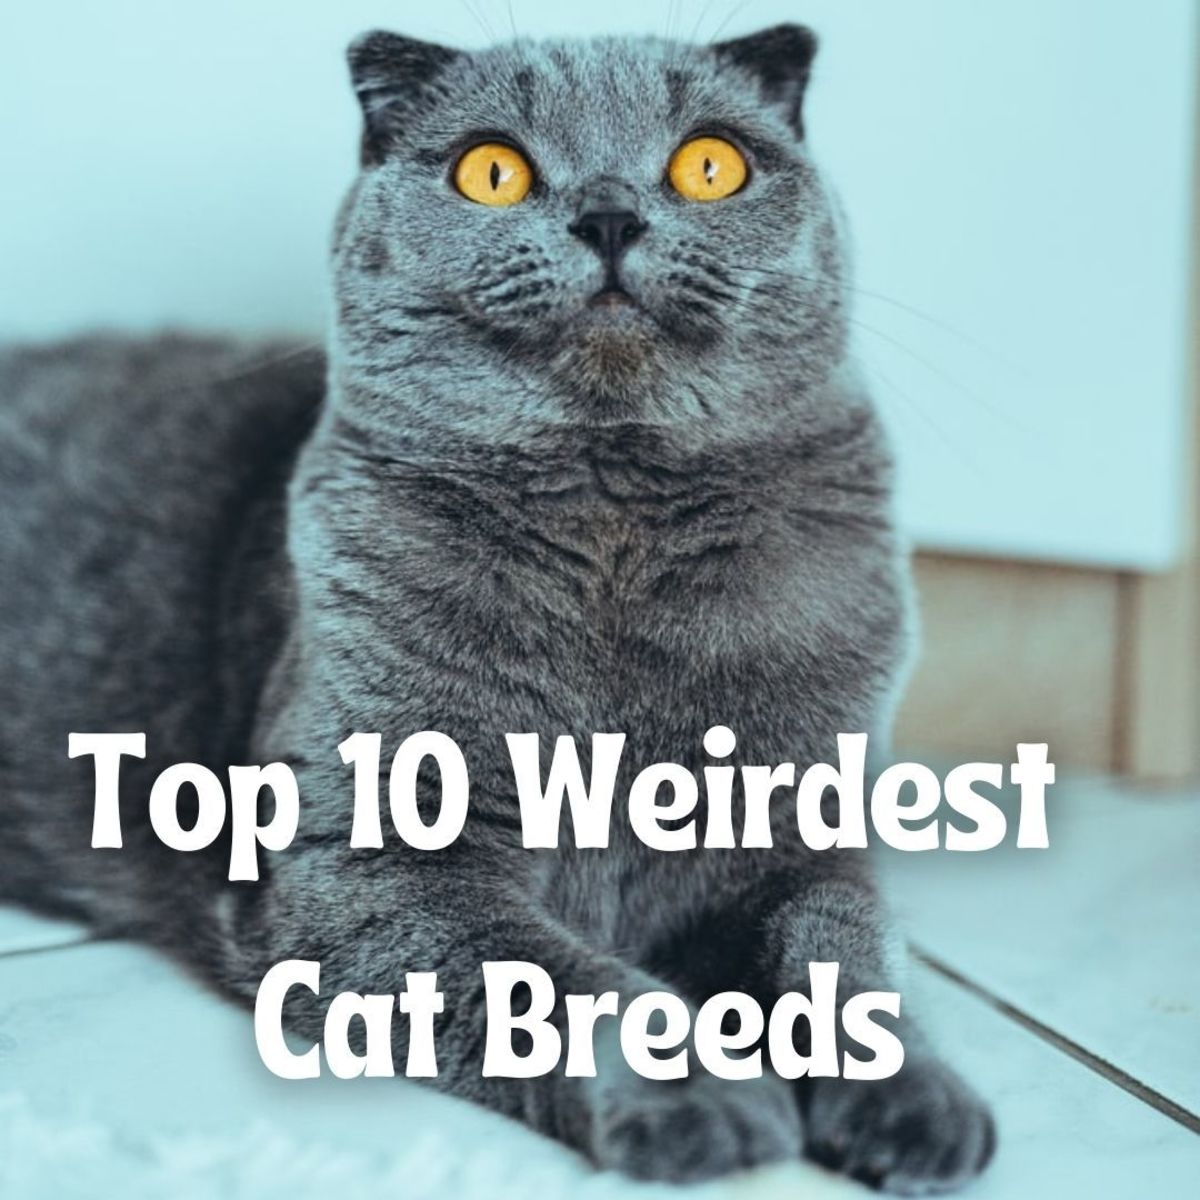 Read ahead to learn about some of the world's strangest kitties.